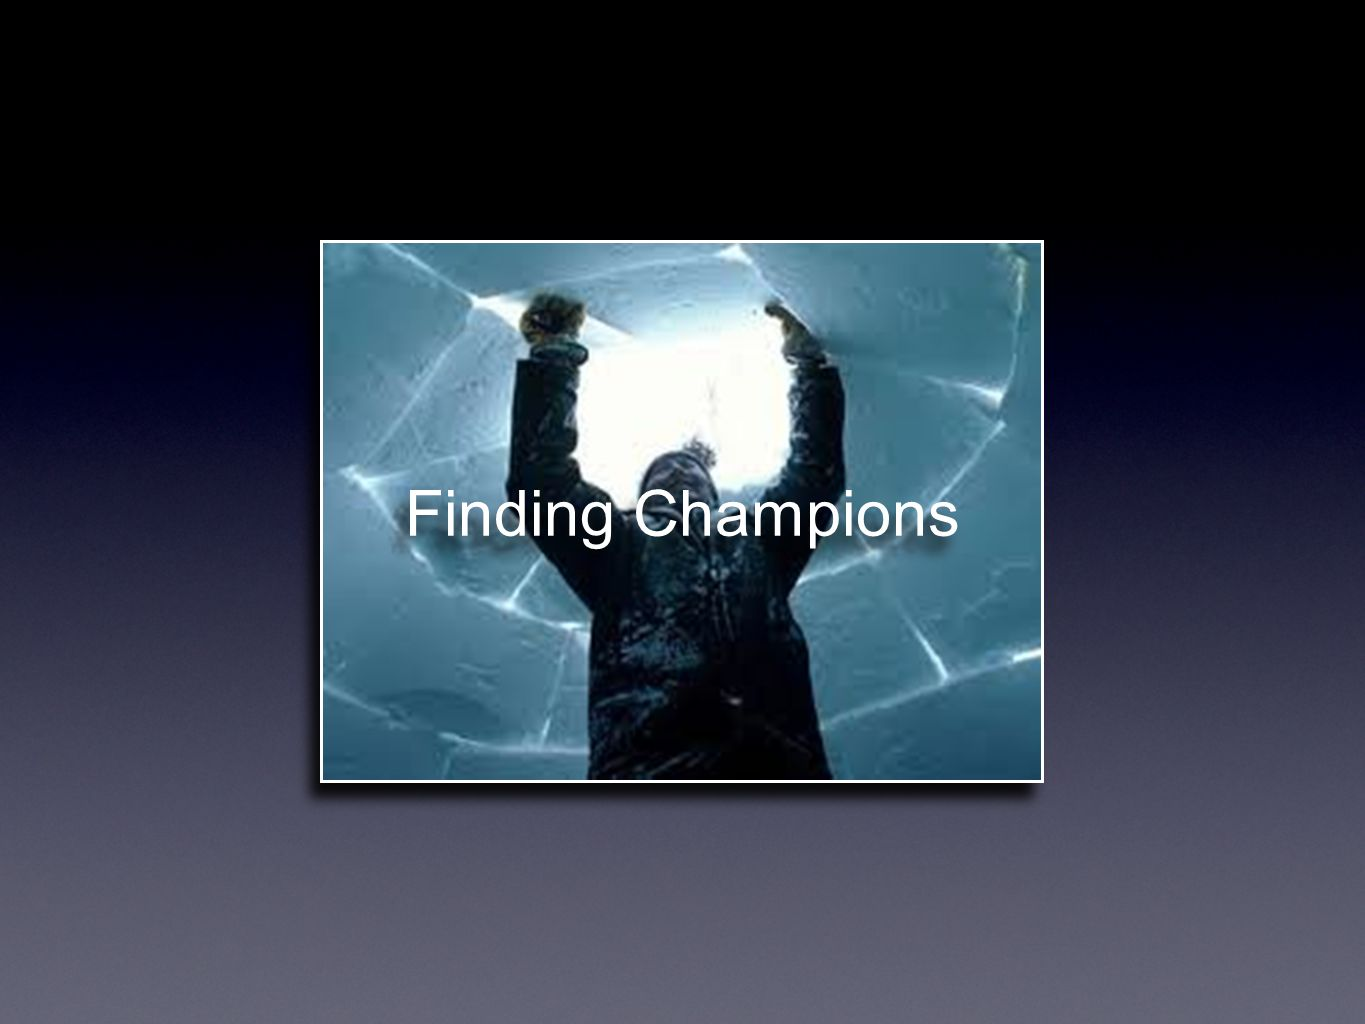 Finding Champions